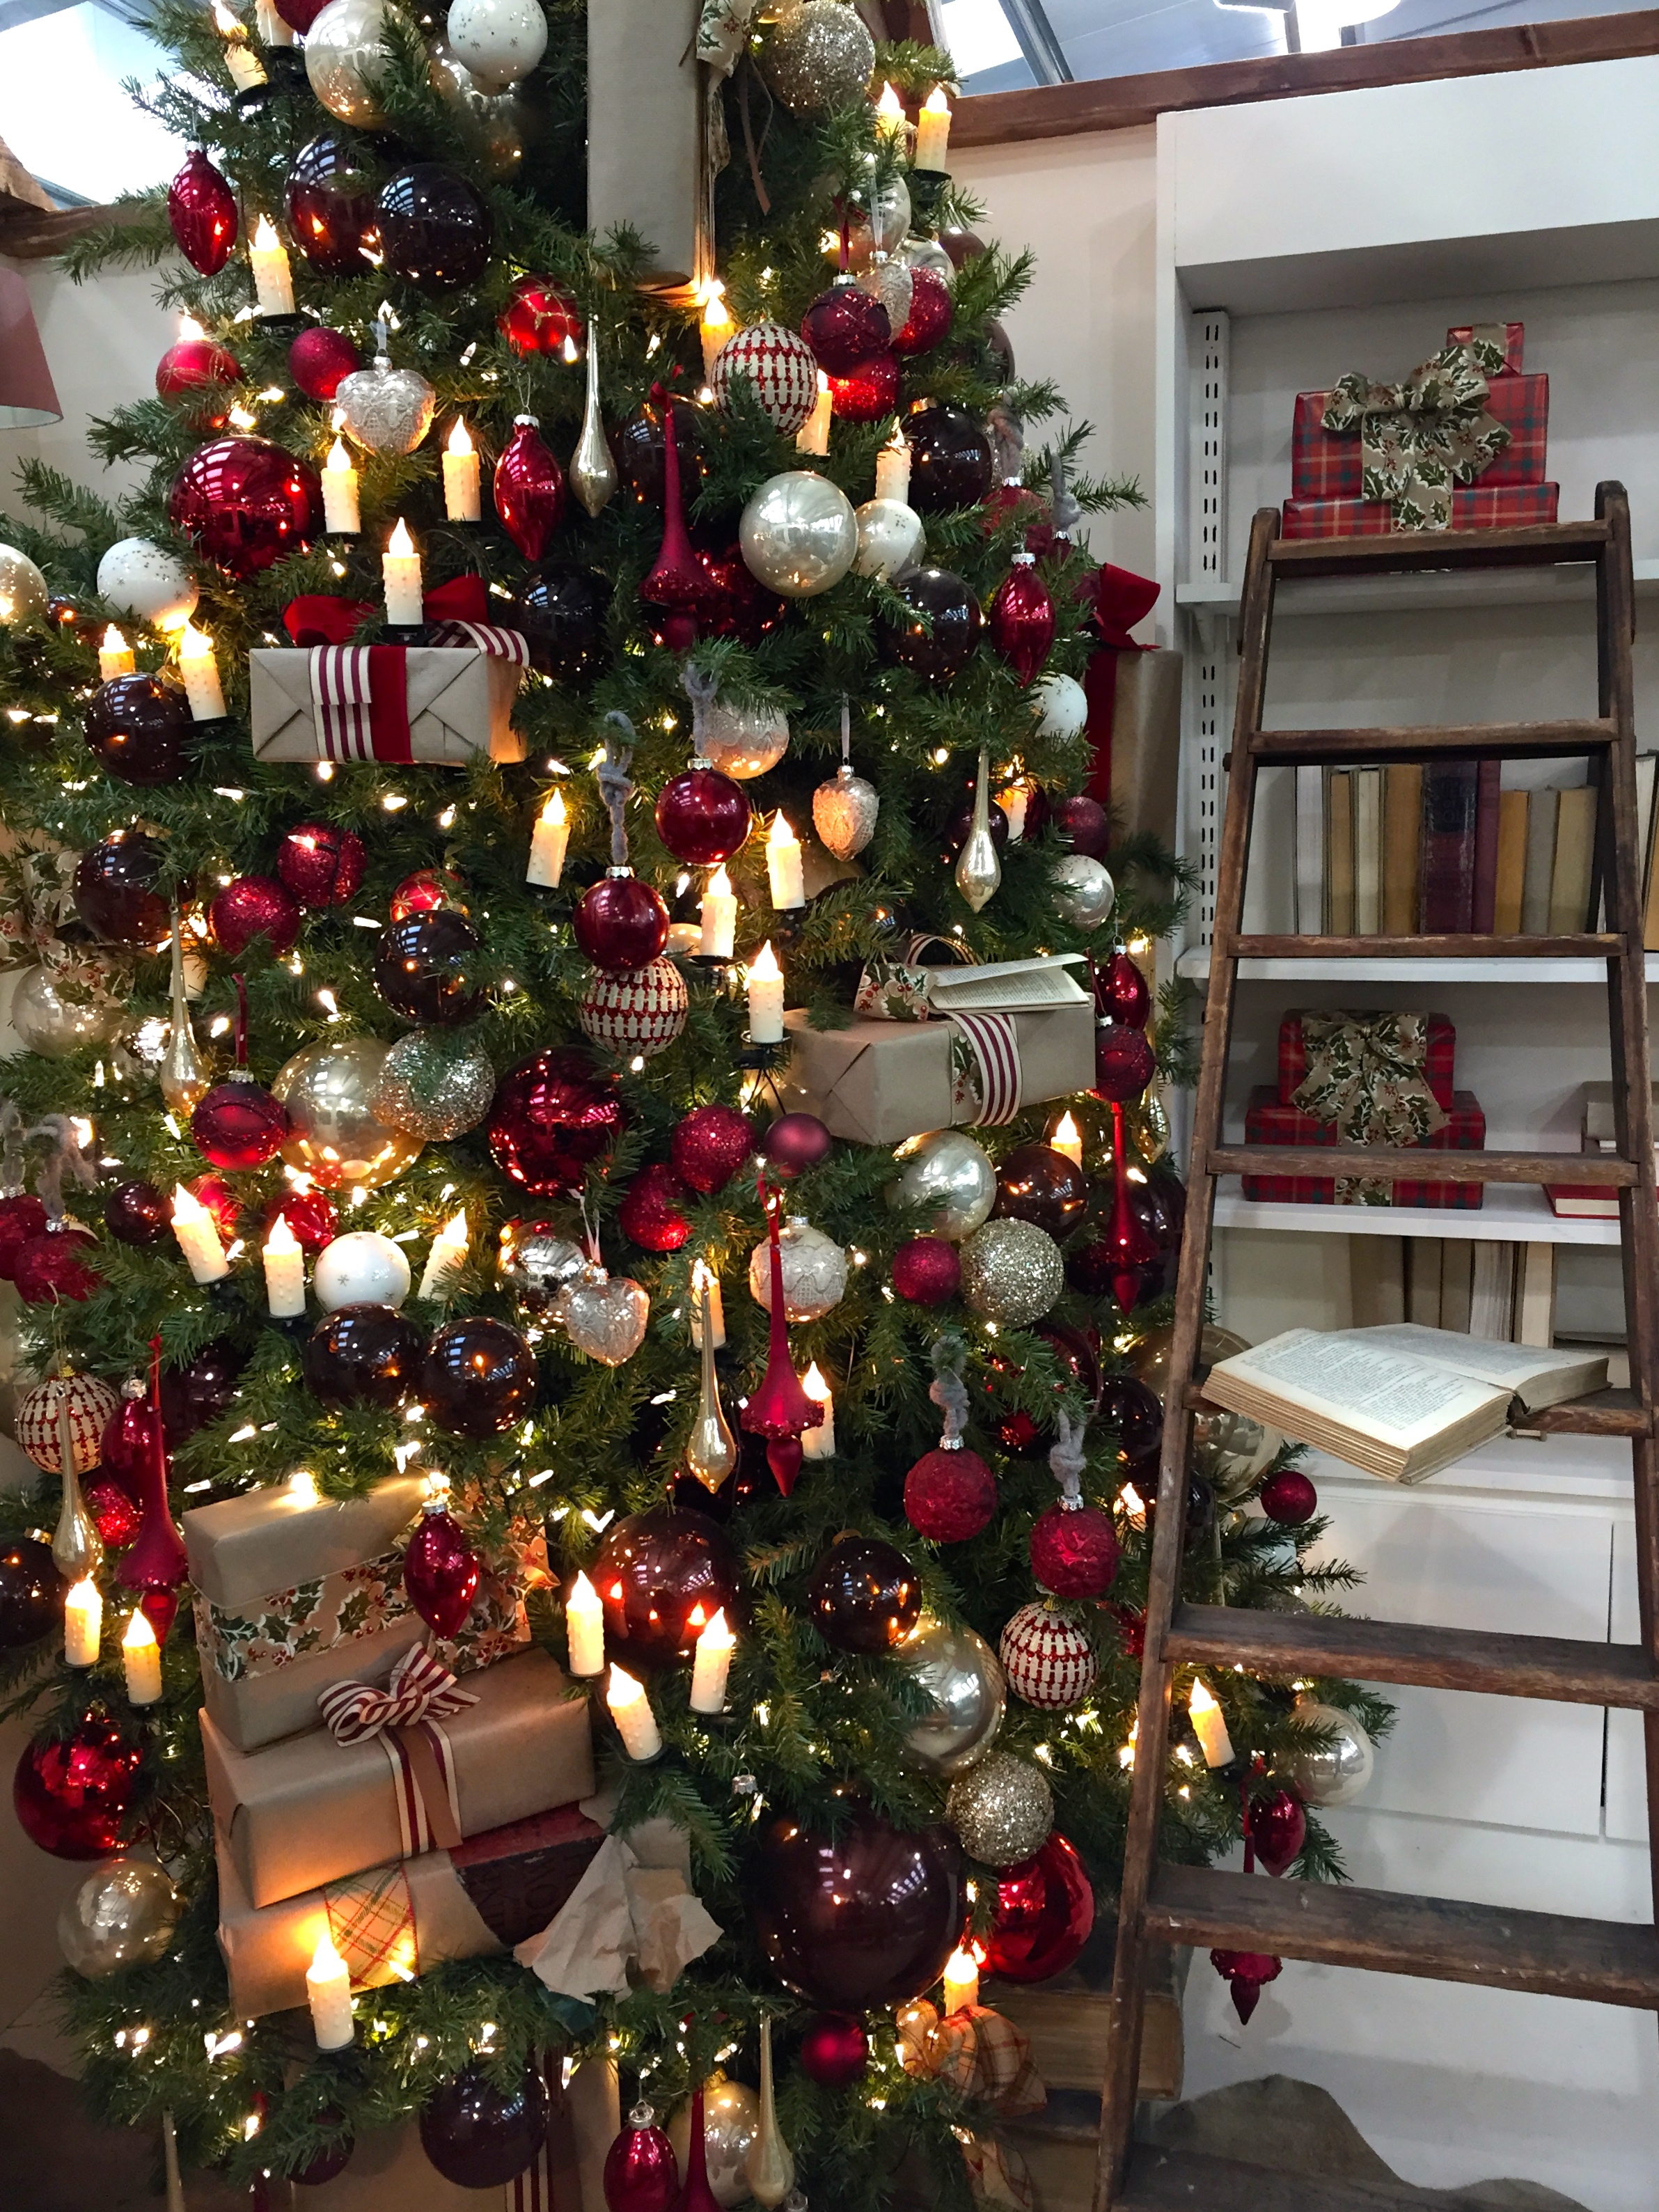 It's Beginning to Look a Lot Like Christmas – The Frustrated Gardener